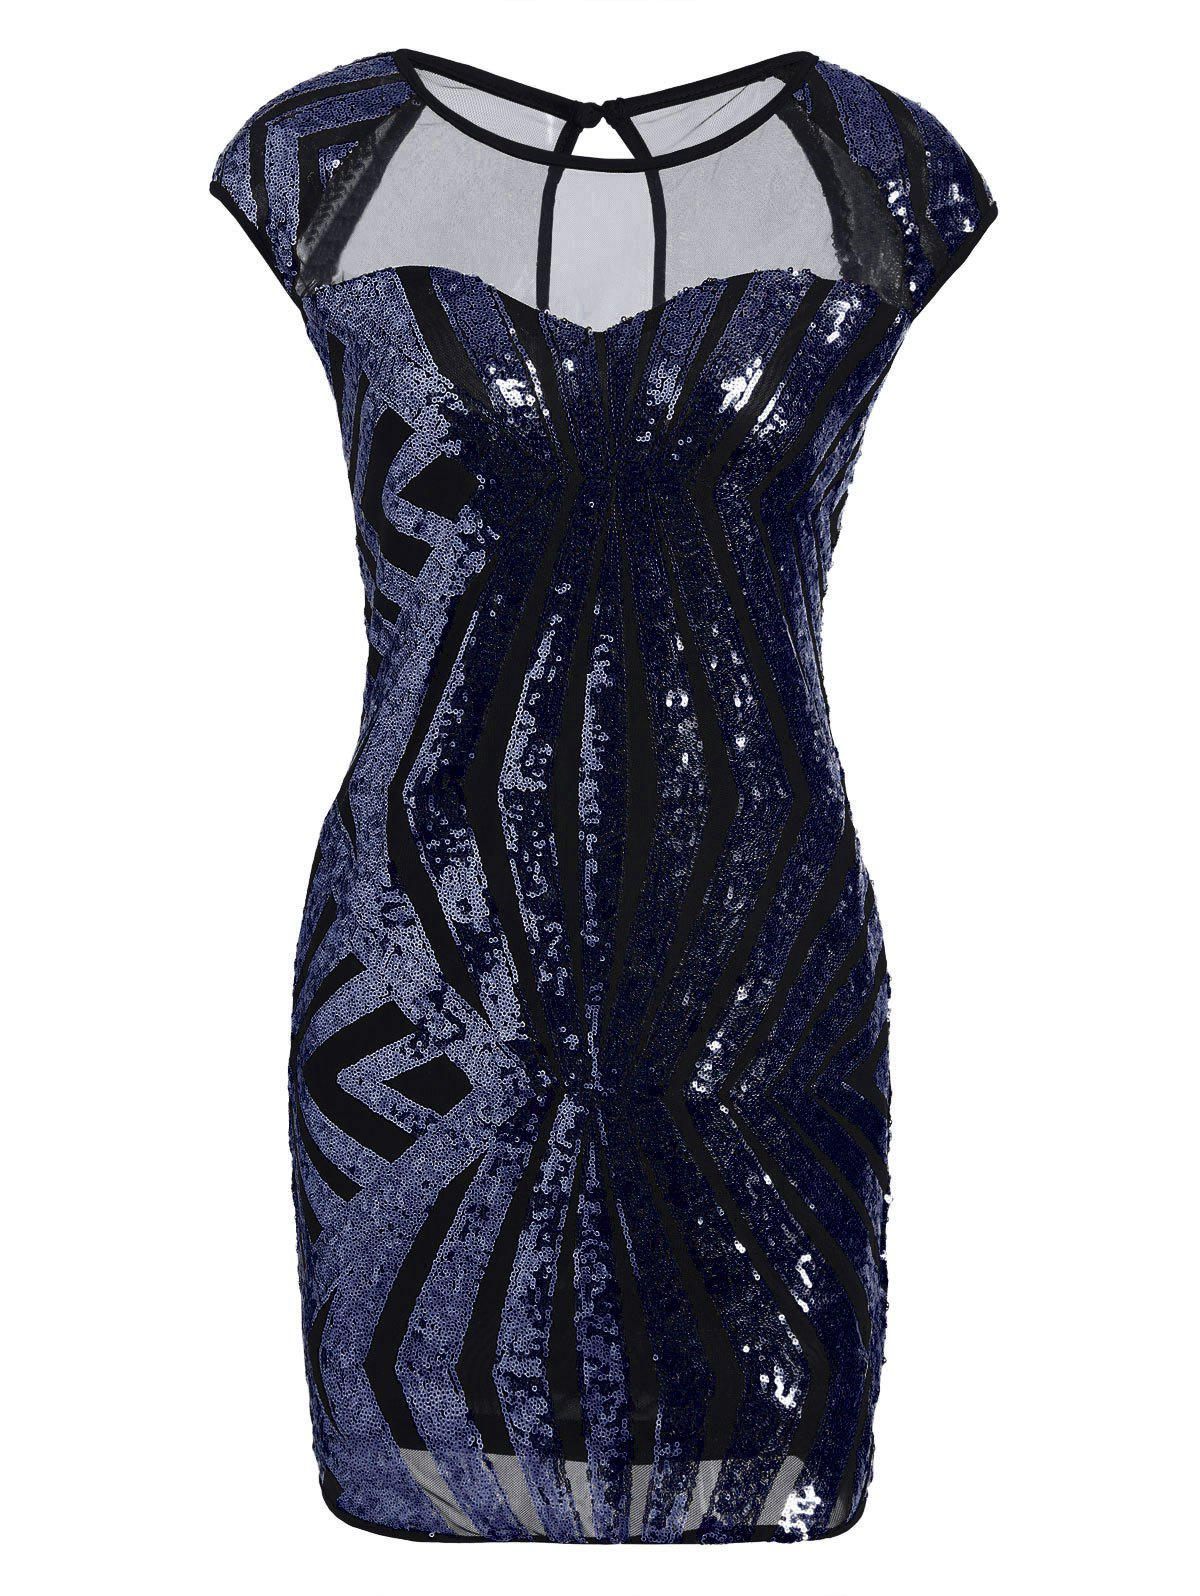 Mesh Insert Sequin Bodycon Club Dress - BLUE L